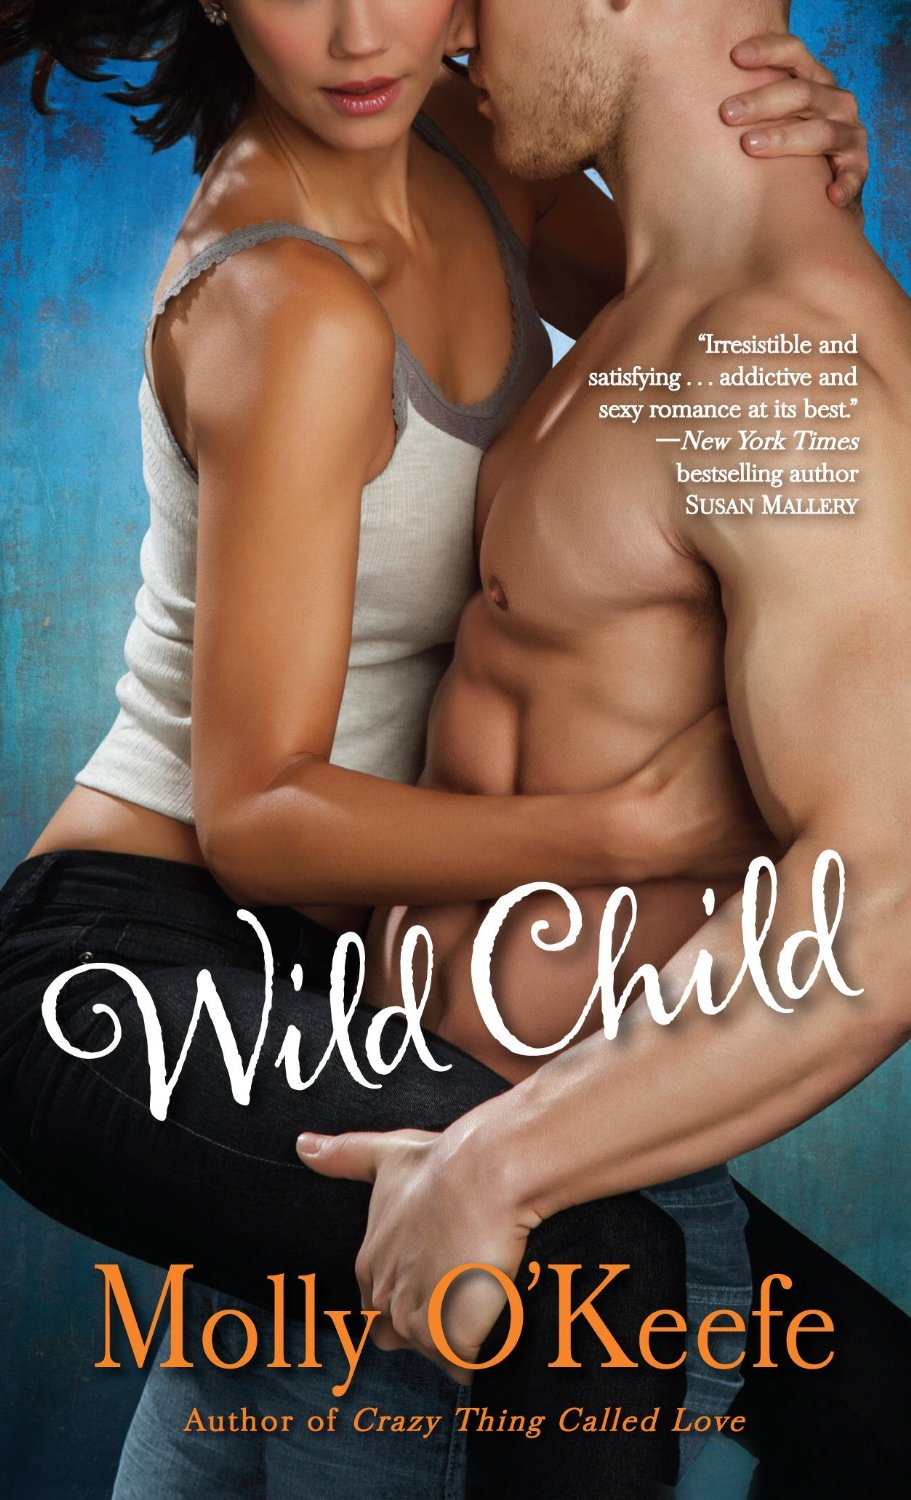 CEFS Review | Amazon | Goodreads Note from Sarah: My favorite novel from Molly O'Keefe in 2013 was actually Crazy Thing Called Love, but Wild Child edged it out on this list for magical penis reasons.